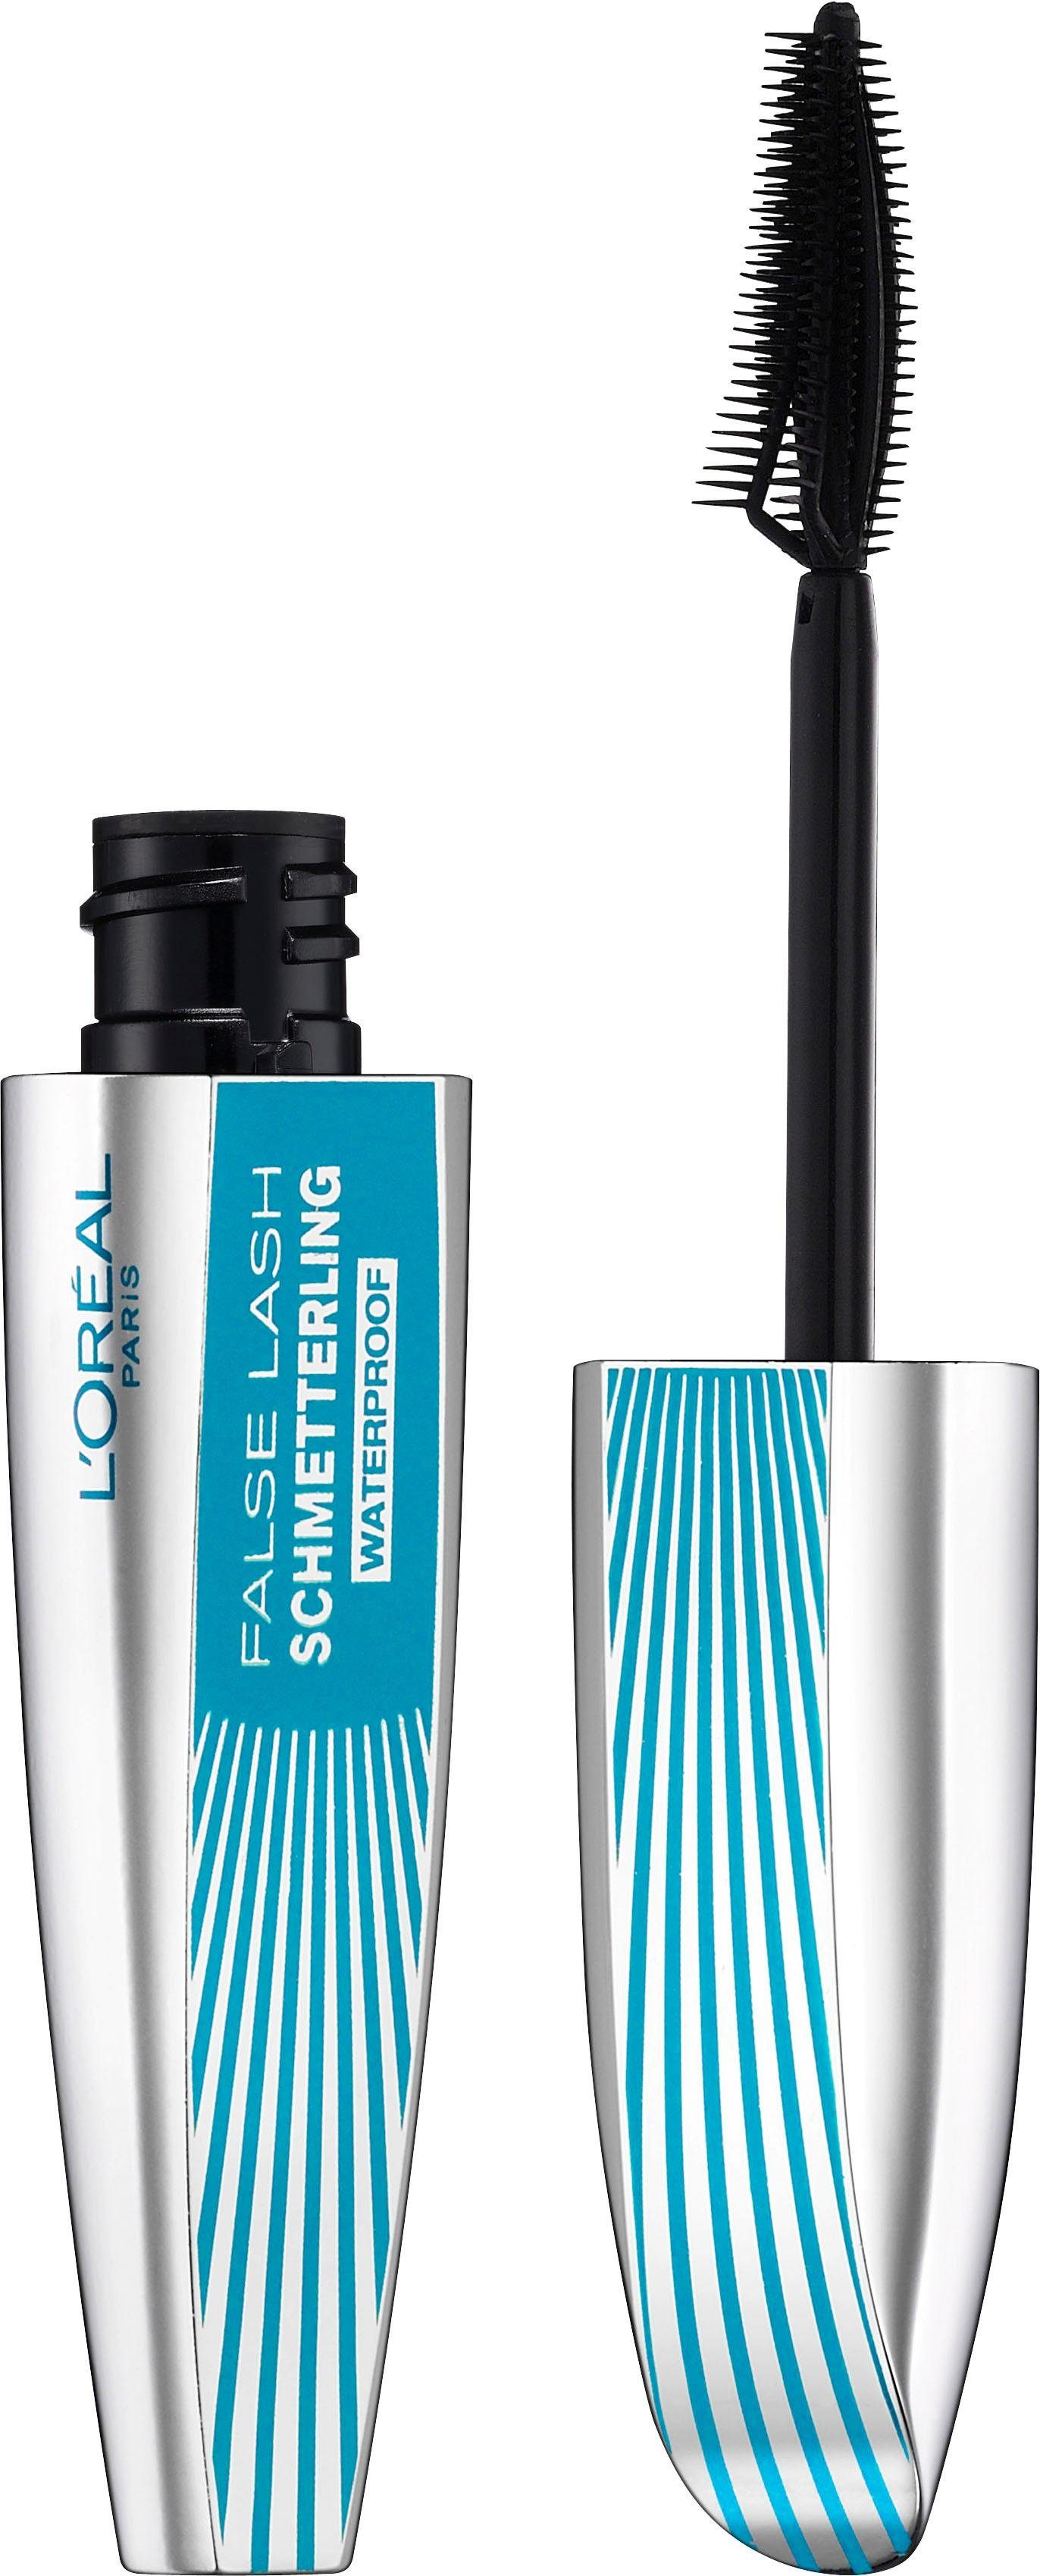 L'Oréal Paris, »False Lash Schmetterling Waterproof«, Mascara